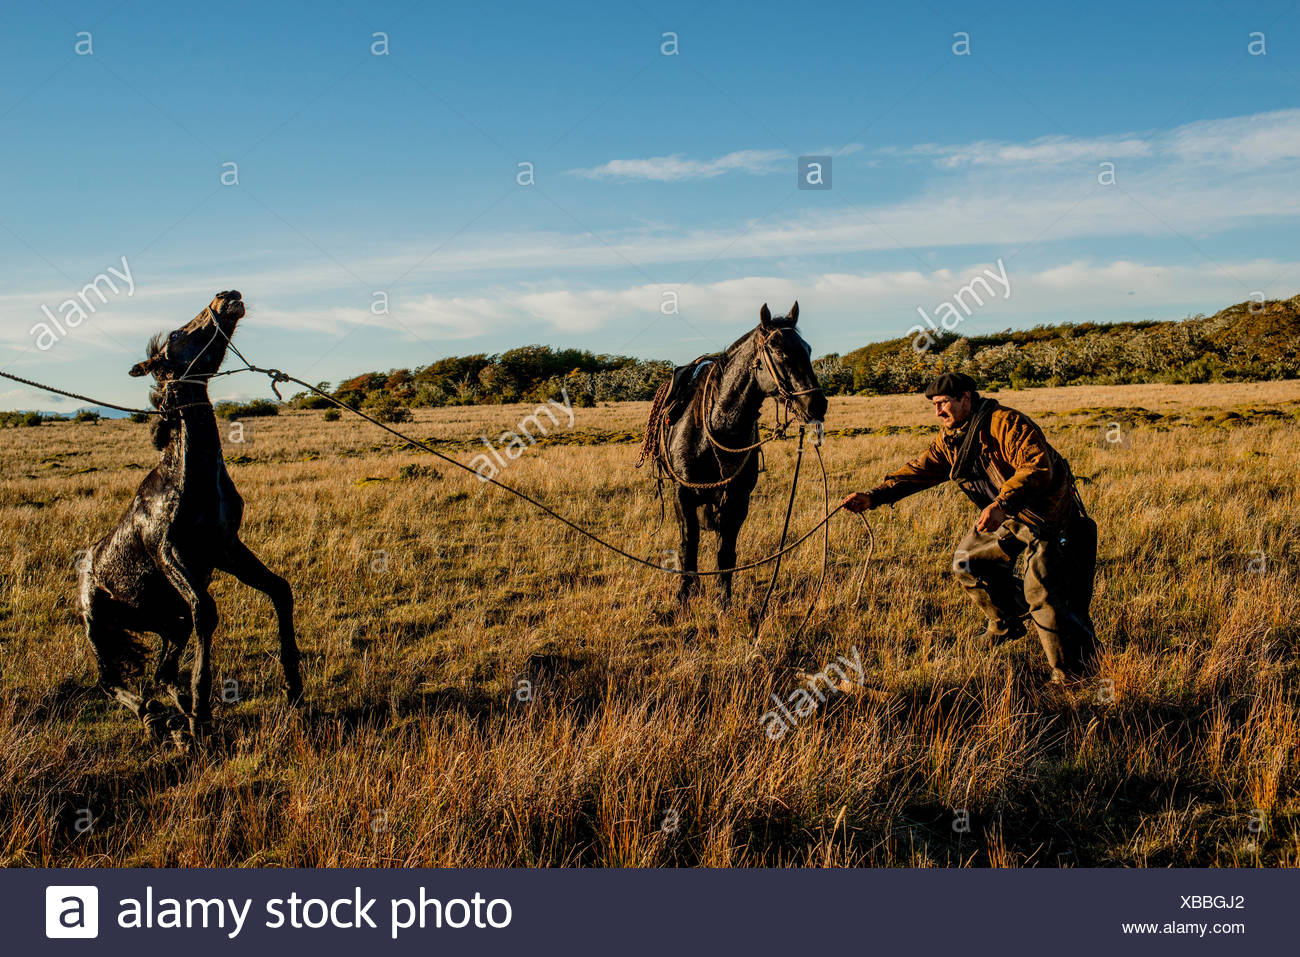 A bagualero, a cowboy who captures feral livestock, tries to take his boleadora, a throwing device with weights at each end, for capturing wild animals, from the legs of a captured foal. - Stock Image